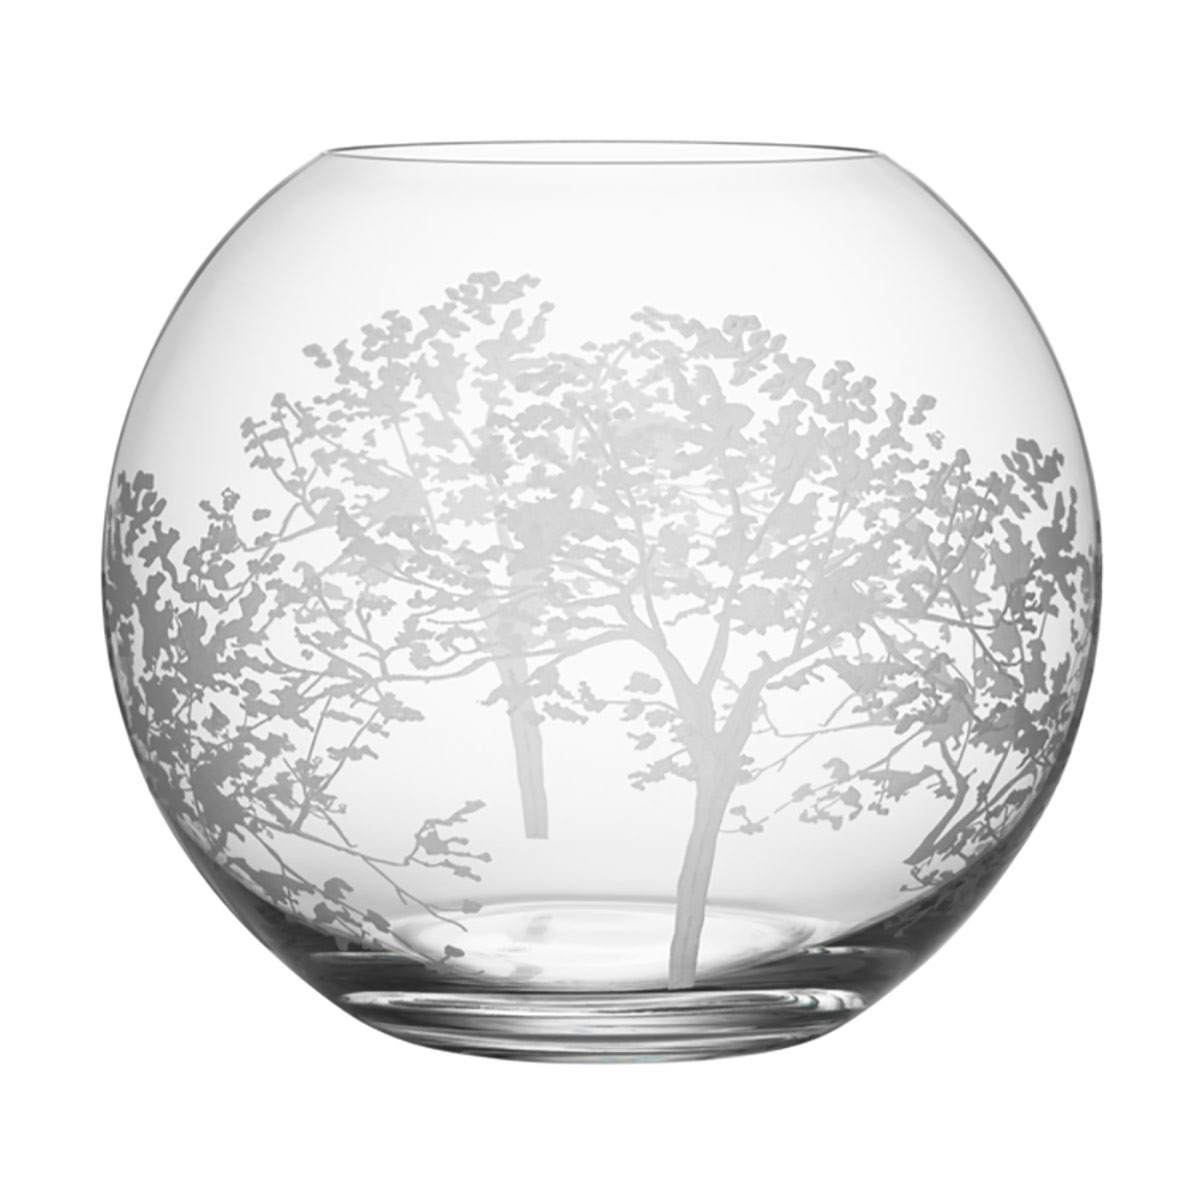 Organic Round Vase - A refined glass vase always makes a great gift. With three different designs, this vase from Swedish glass designer Orrefors is sure to impress. Perfect for a lush flower arrangement or on its own. $75